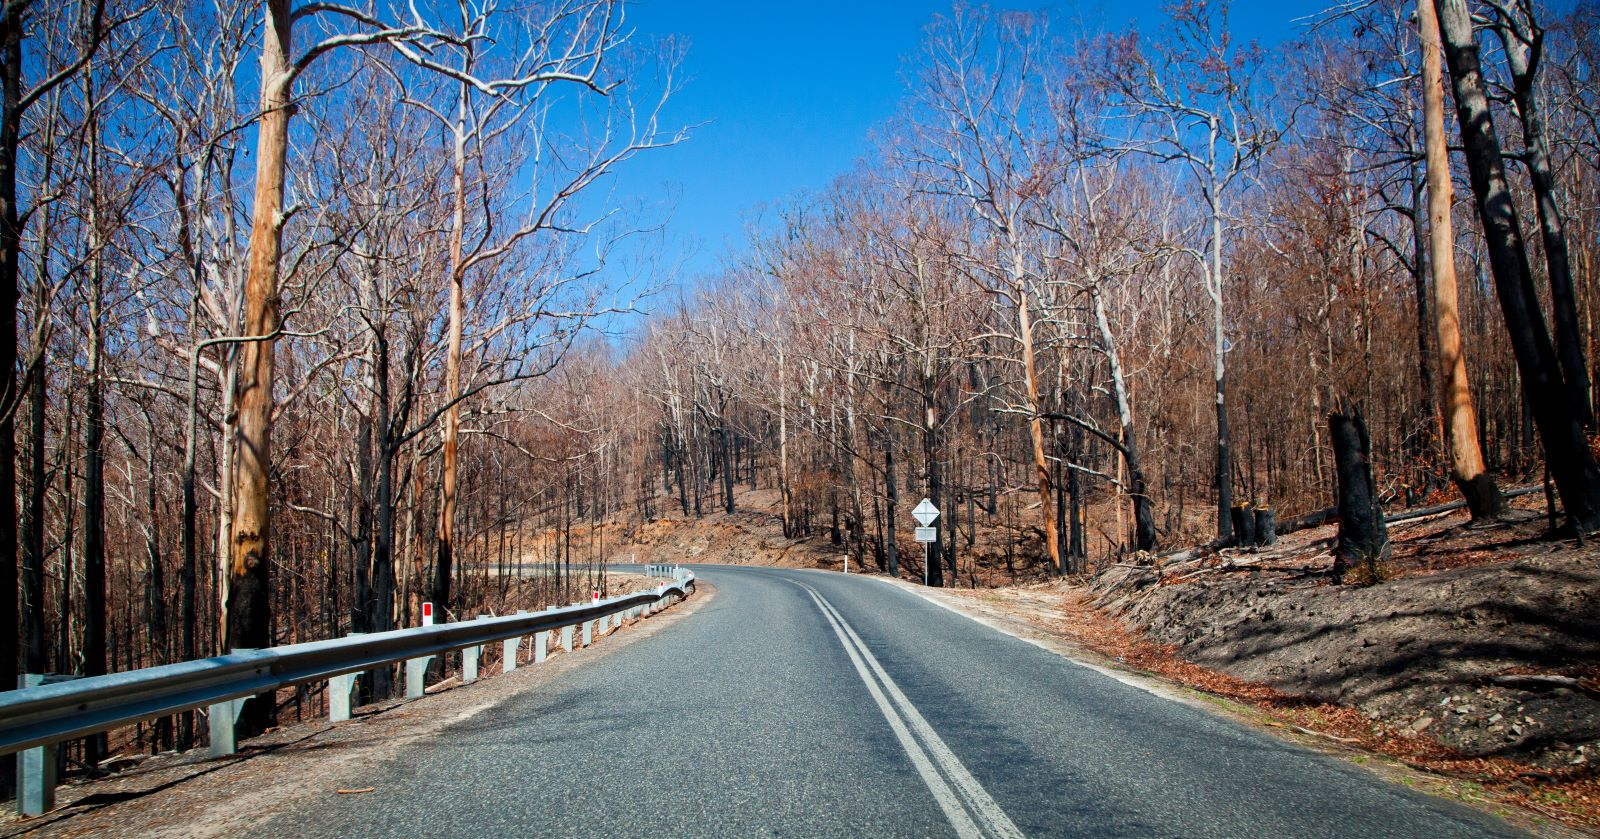 Firebreak motorway in Australia surrounded by burnt trees